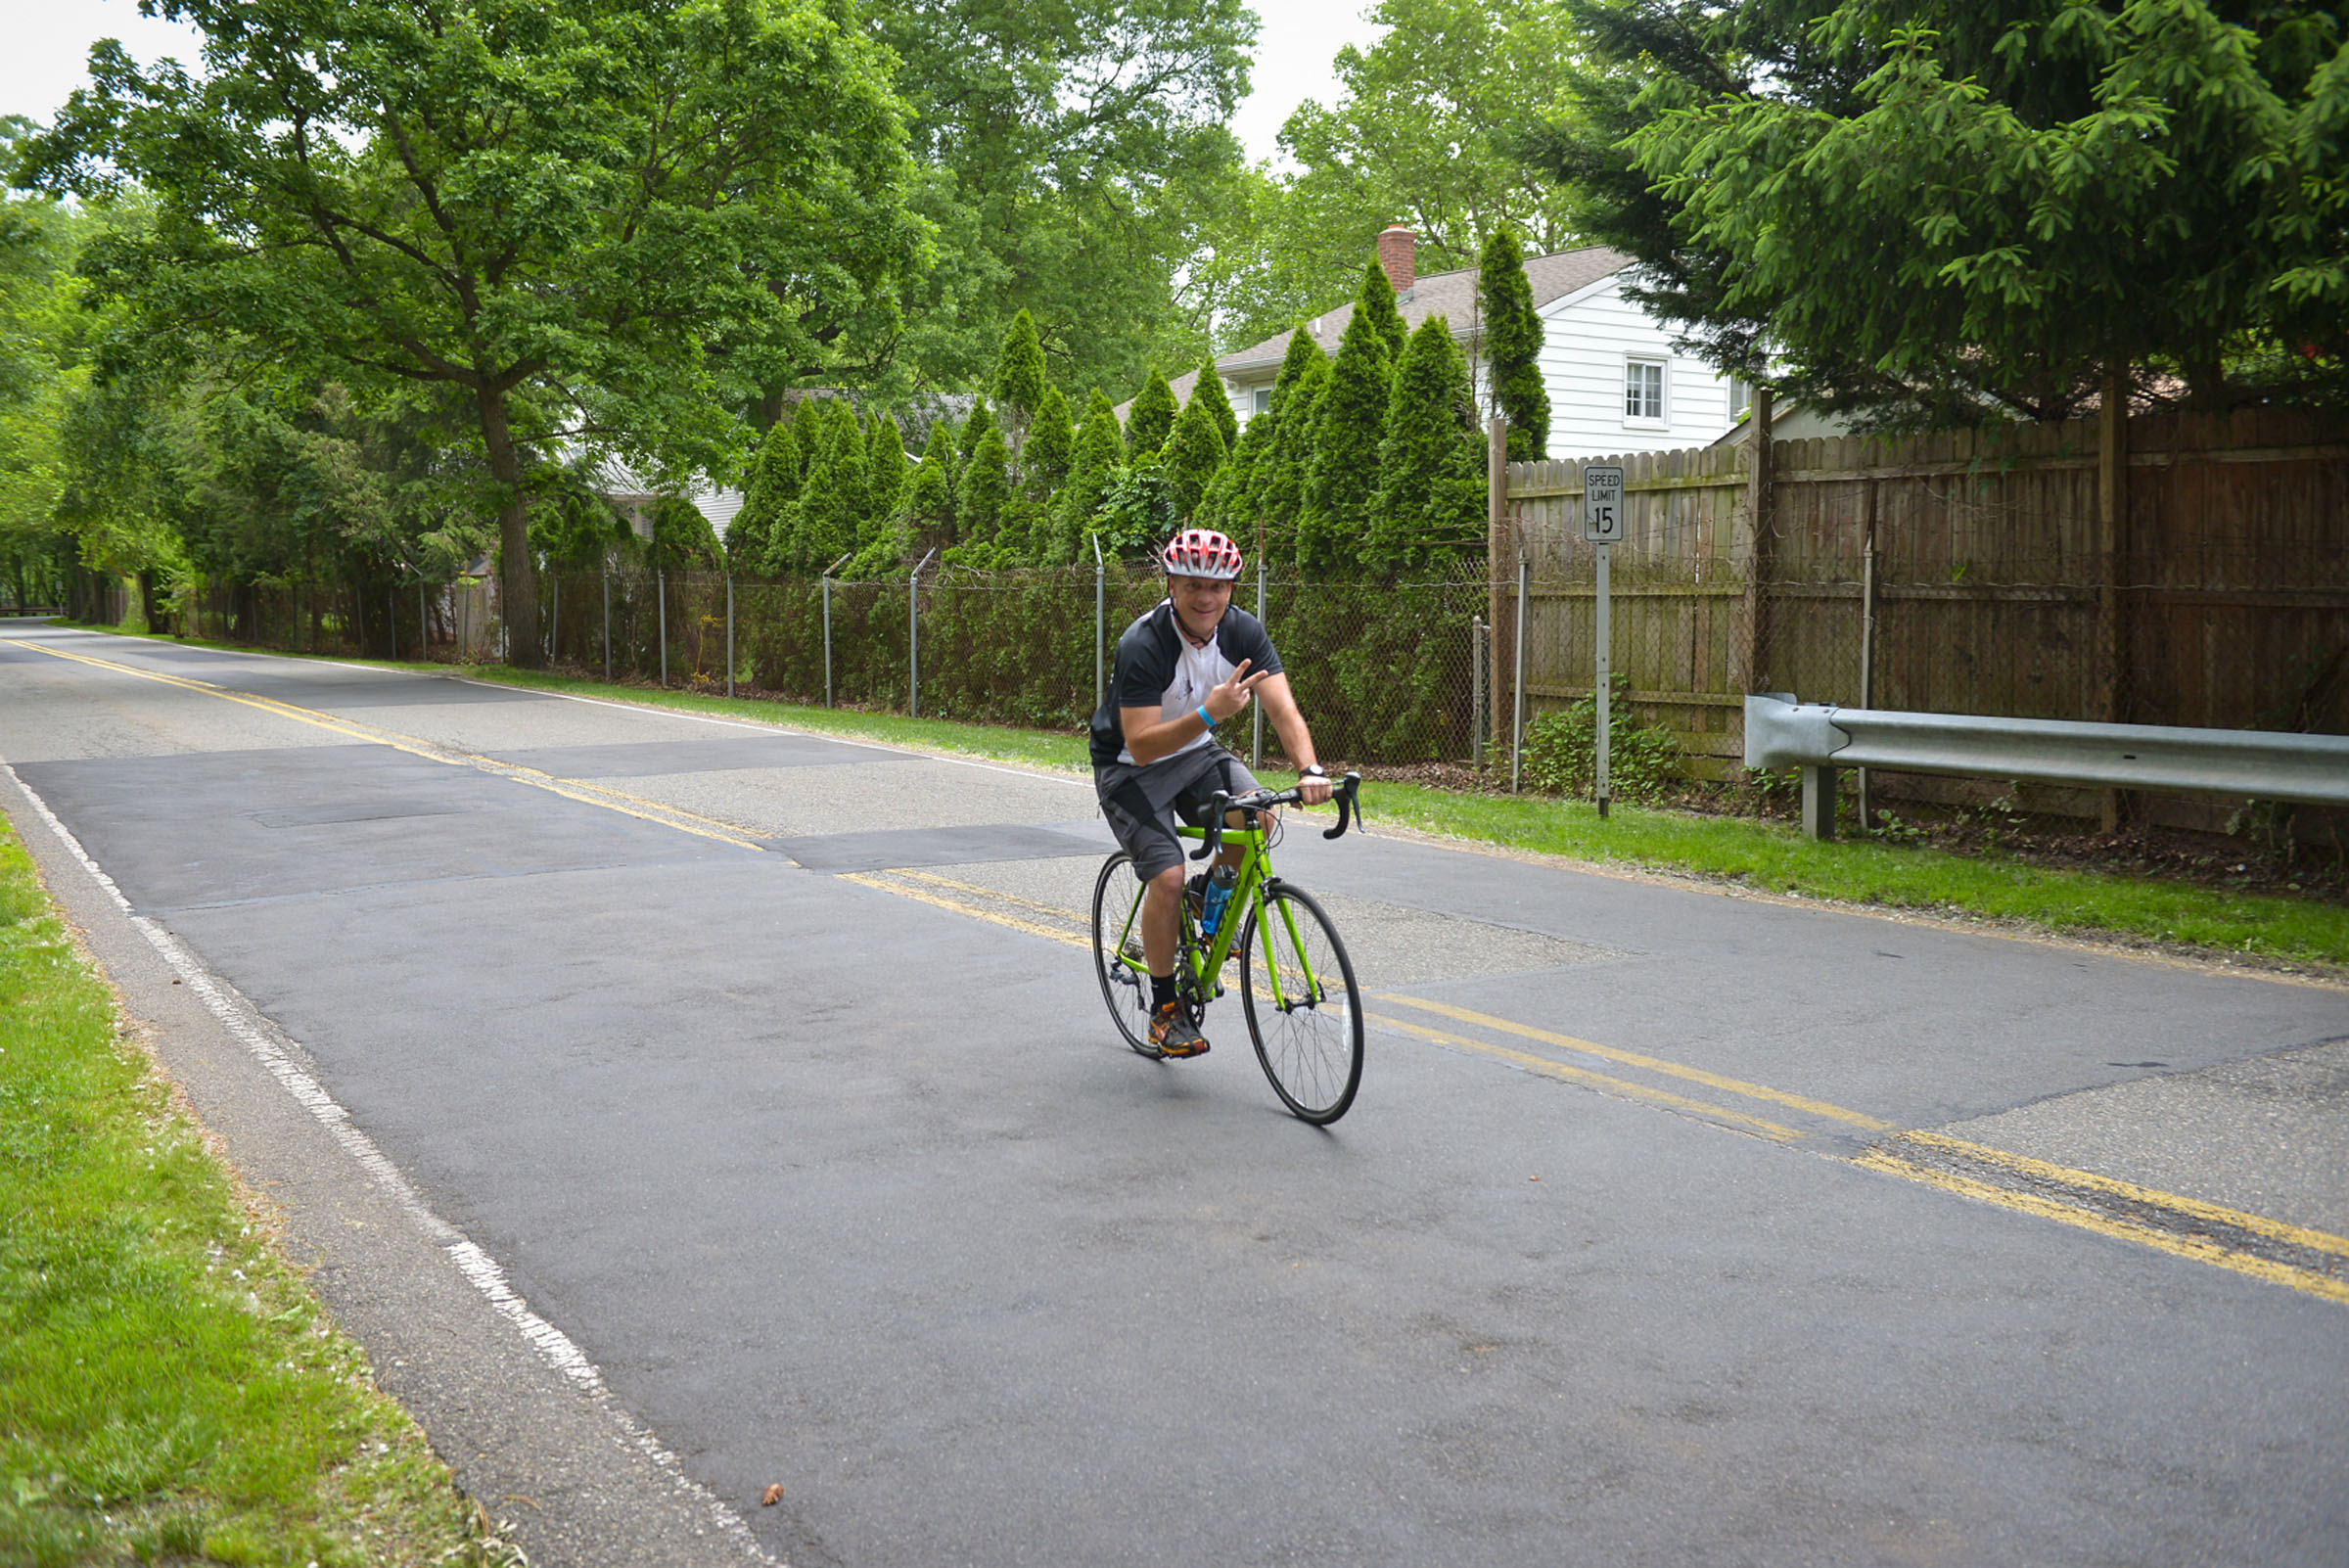 2017-06-04 GTD4A Charity Bike Ride - BCC - Paramus NJ-2338.jpg